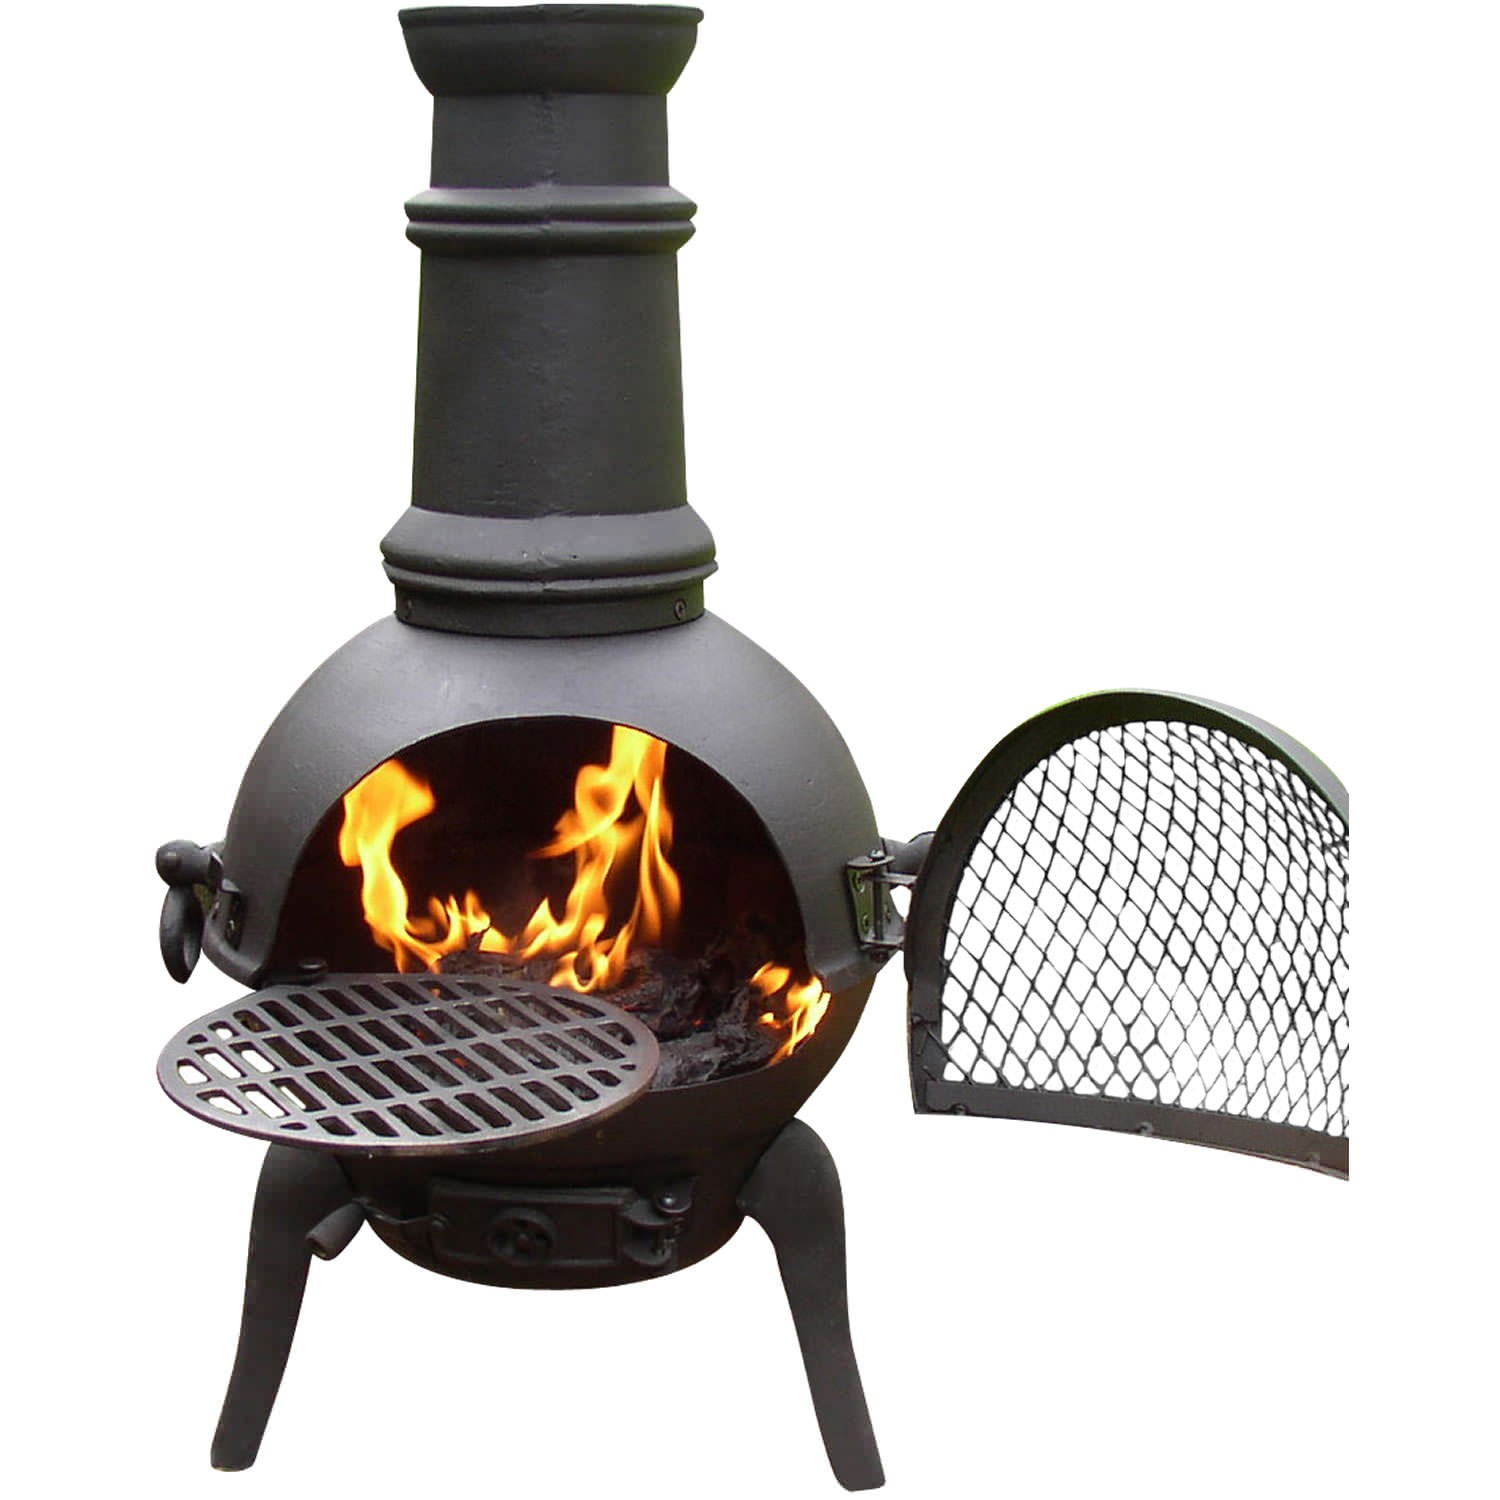 La Hacienda Cadiz Cast Iron Chiminea Small Bronze for outdoor furniture ideas